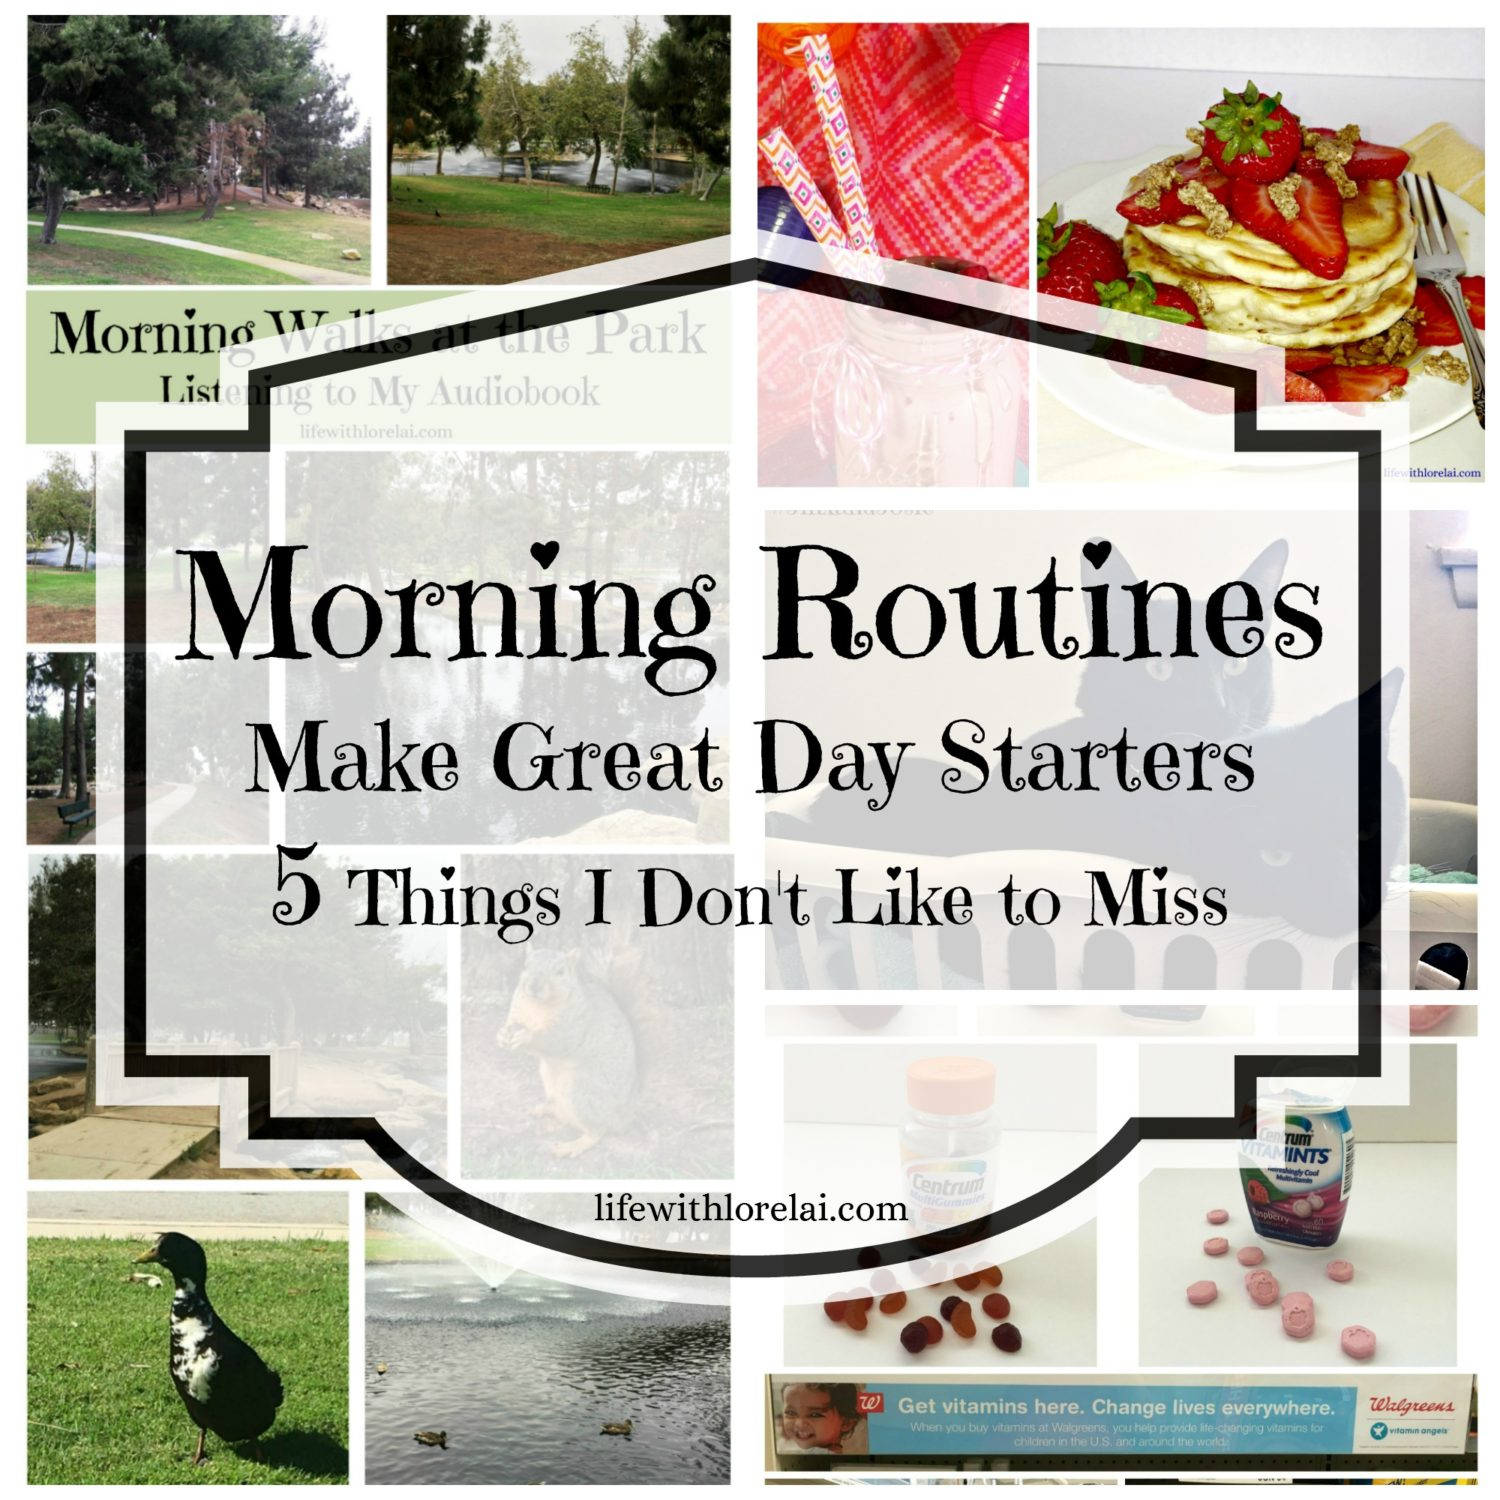 Morning-Routines-Make-Great-Day-Starters-Life-With-Lorelai